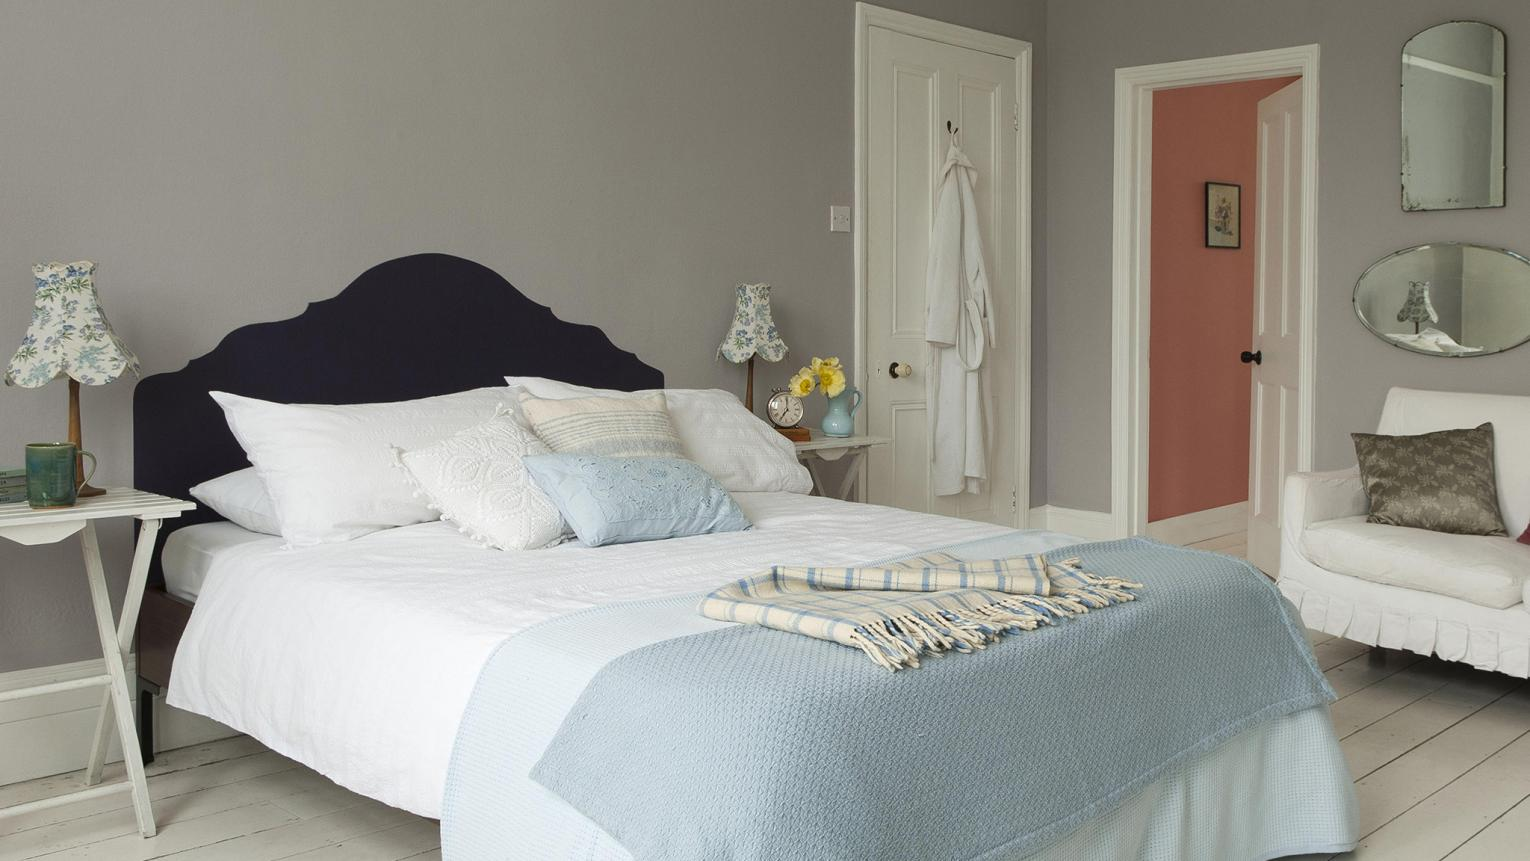 Use soft, dreamy neutrals to create a bedroom that encourages rest and relaxation.